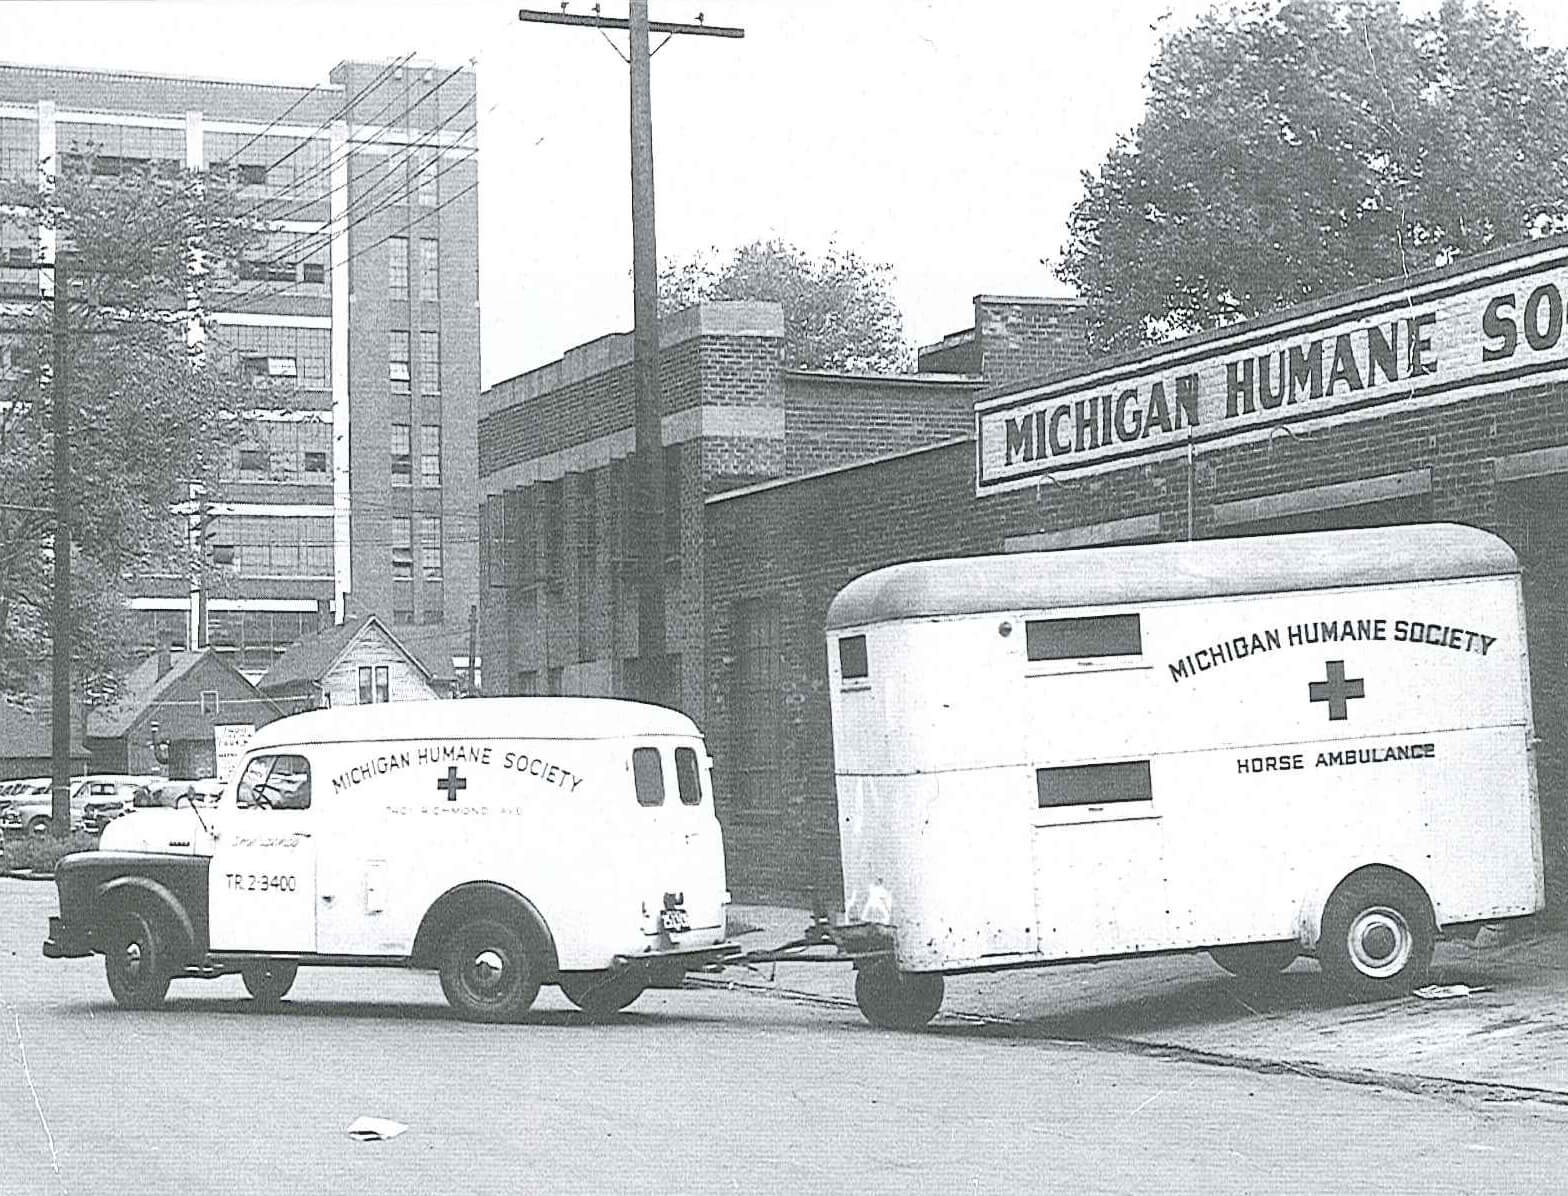 The Detroit Center for Animal Care, decades ago. This is the same building we currently reside in that will be replaced by our new, state of the art facility next year.